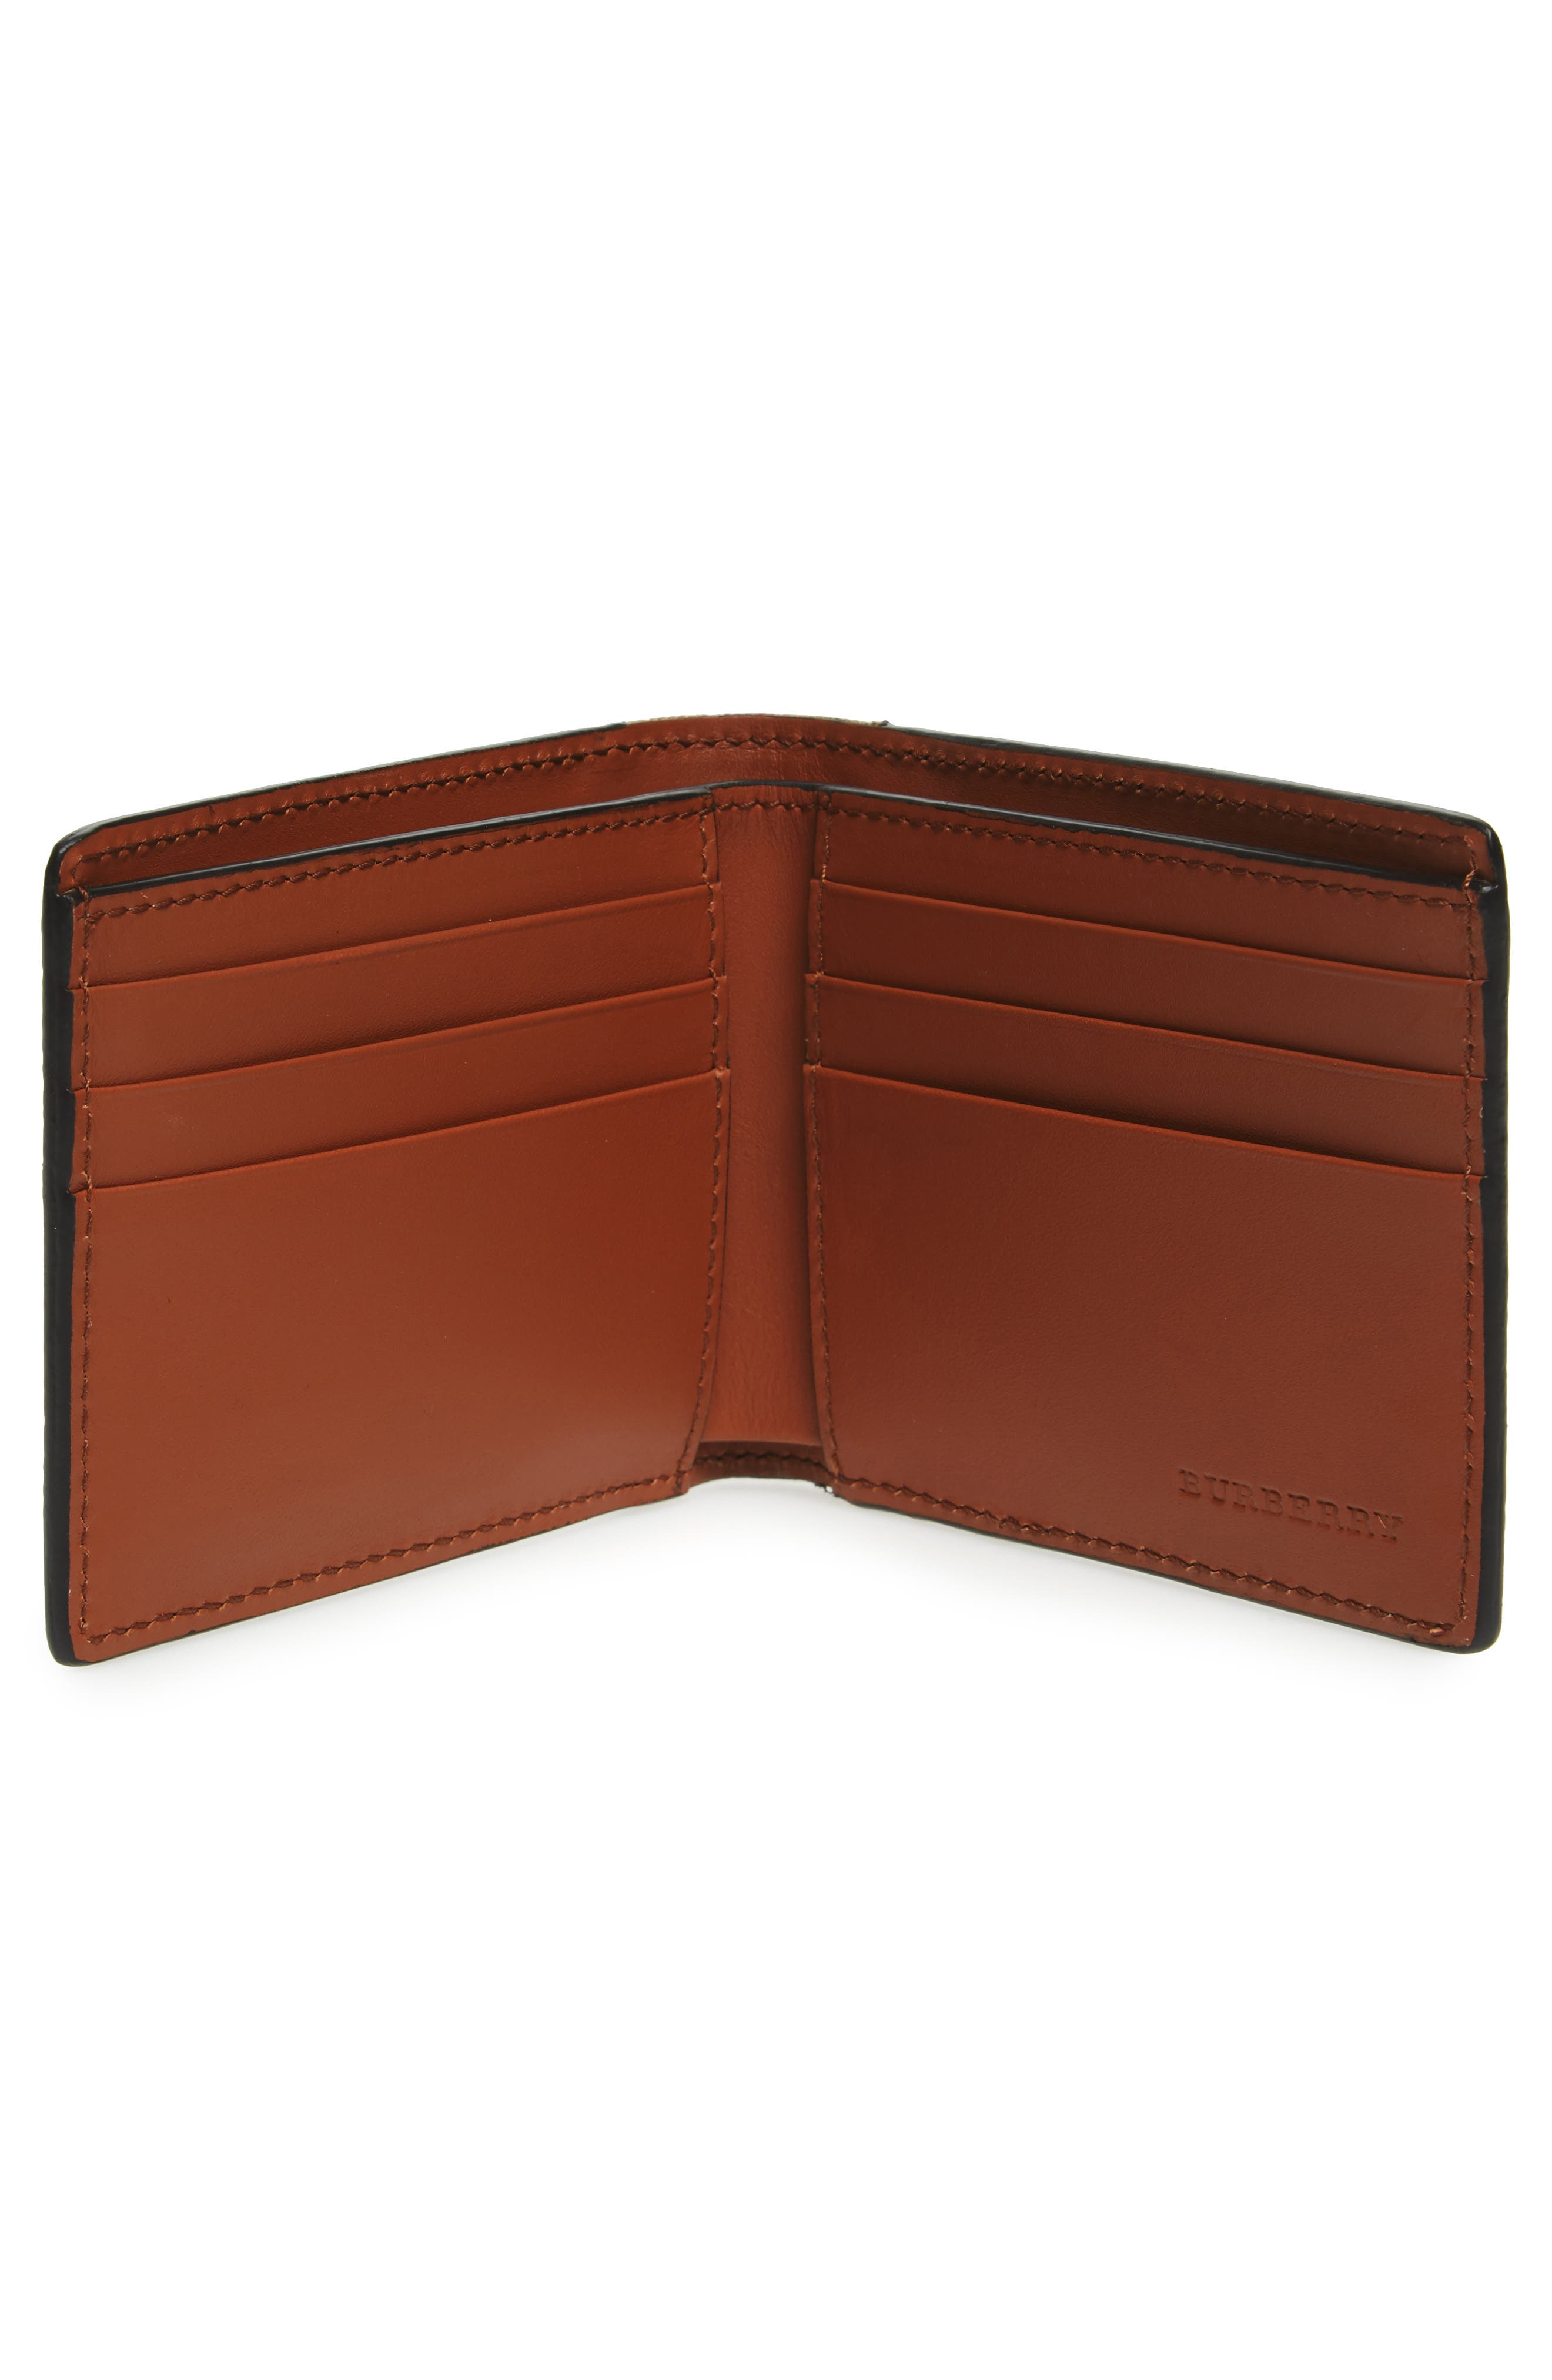 Alternate Image 2  - Burberry Leather Wallet